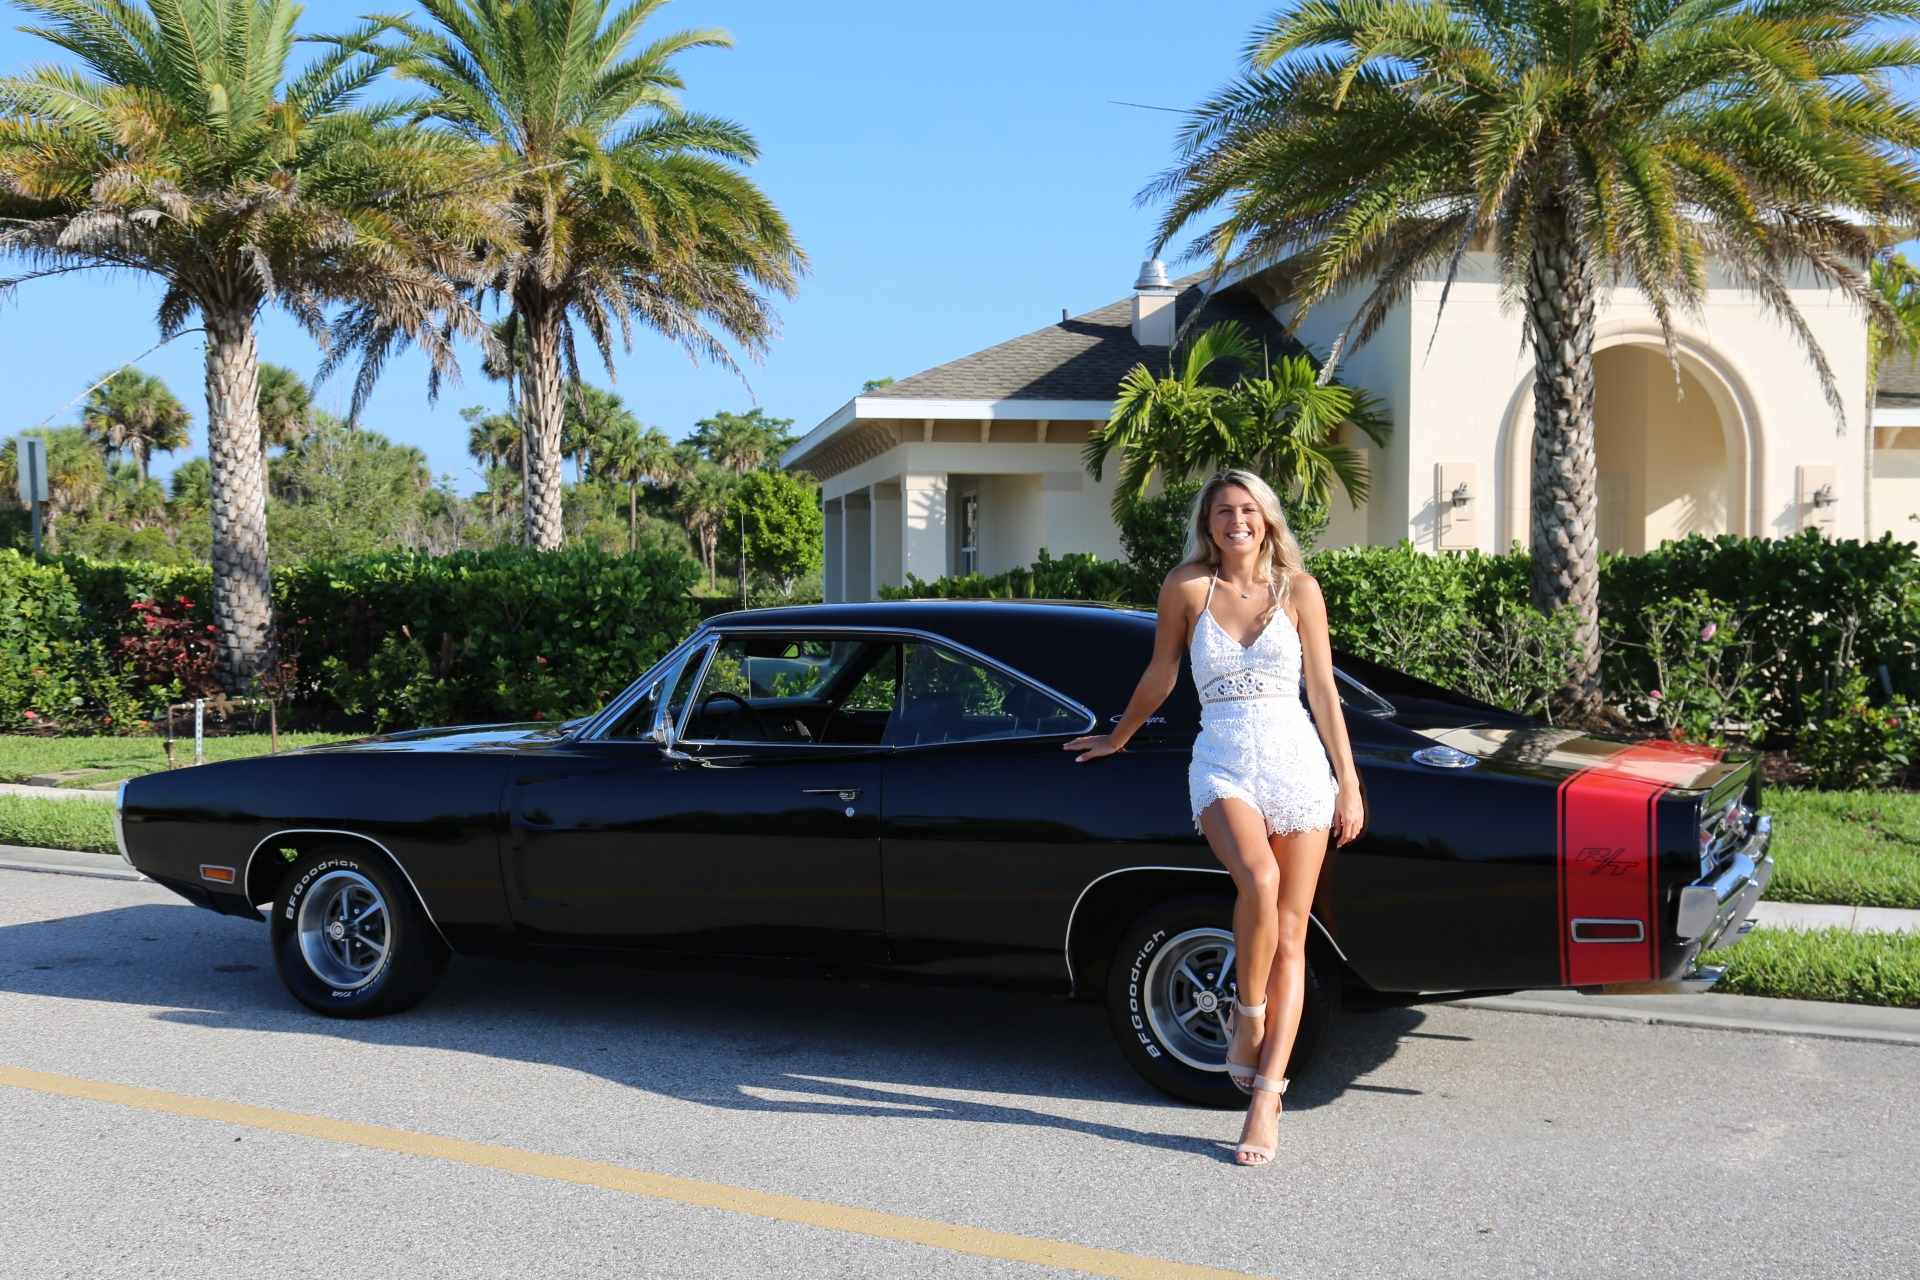 Used 1970 Dodge Charger Charger for sale $52,000 at Muscle Cars for Sale Inc. in Fort Myers FL 33912 6